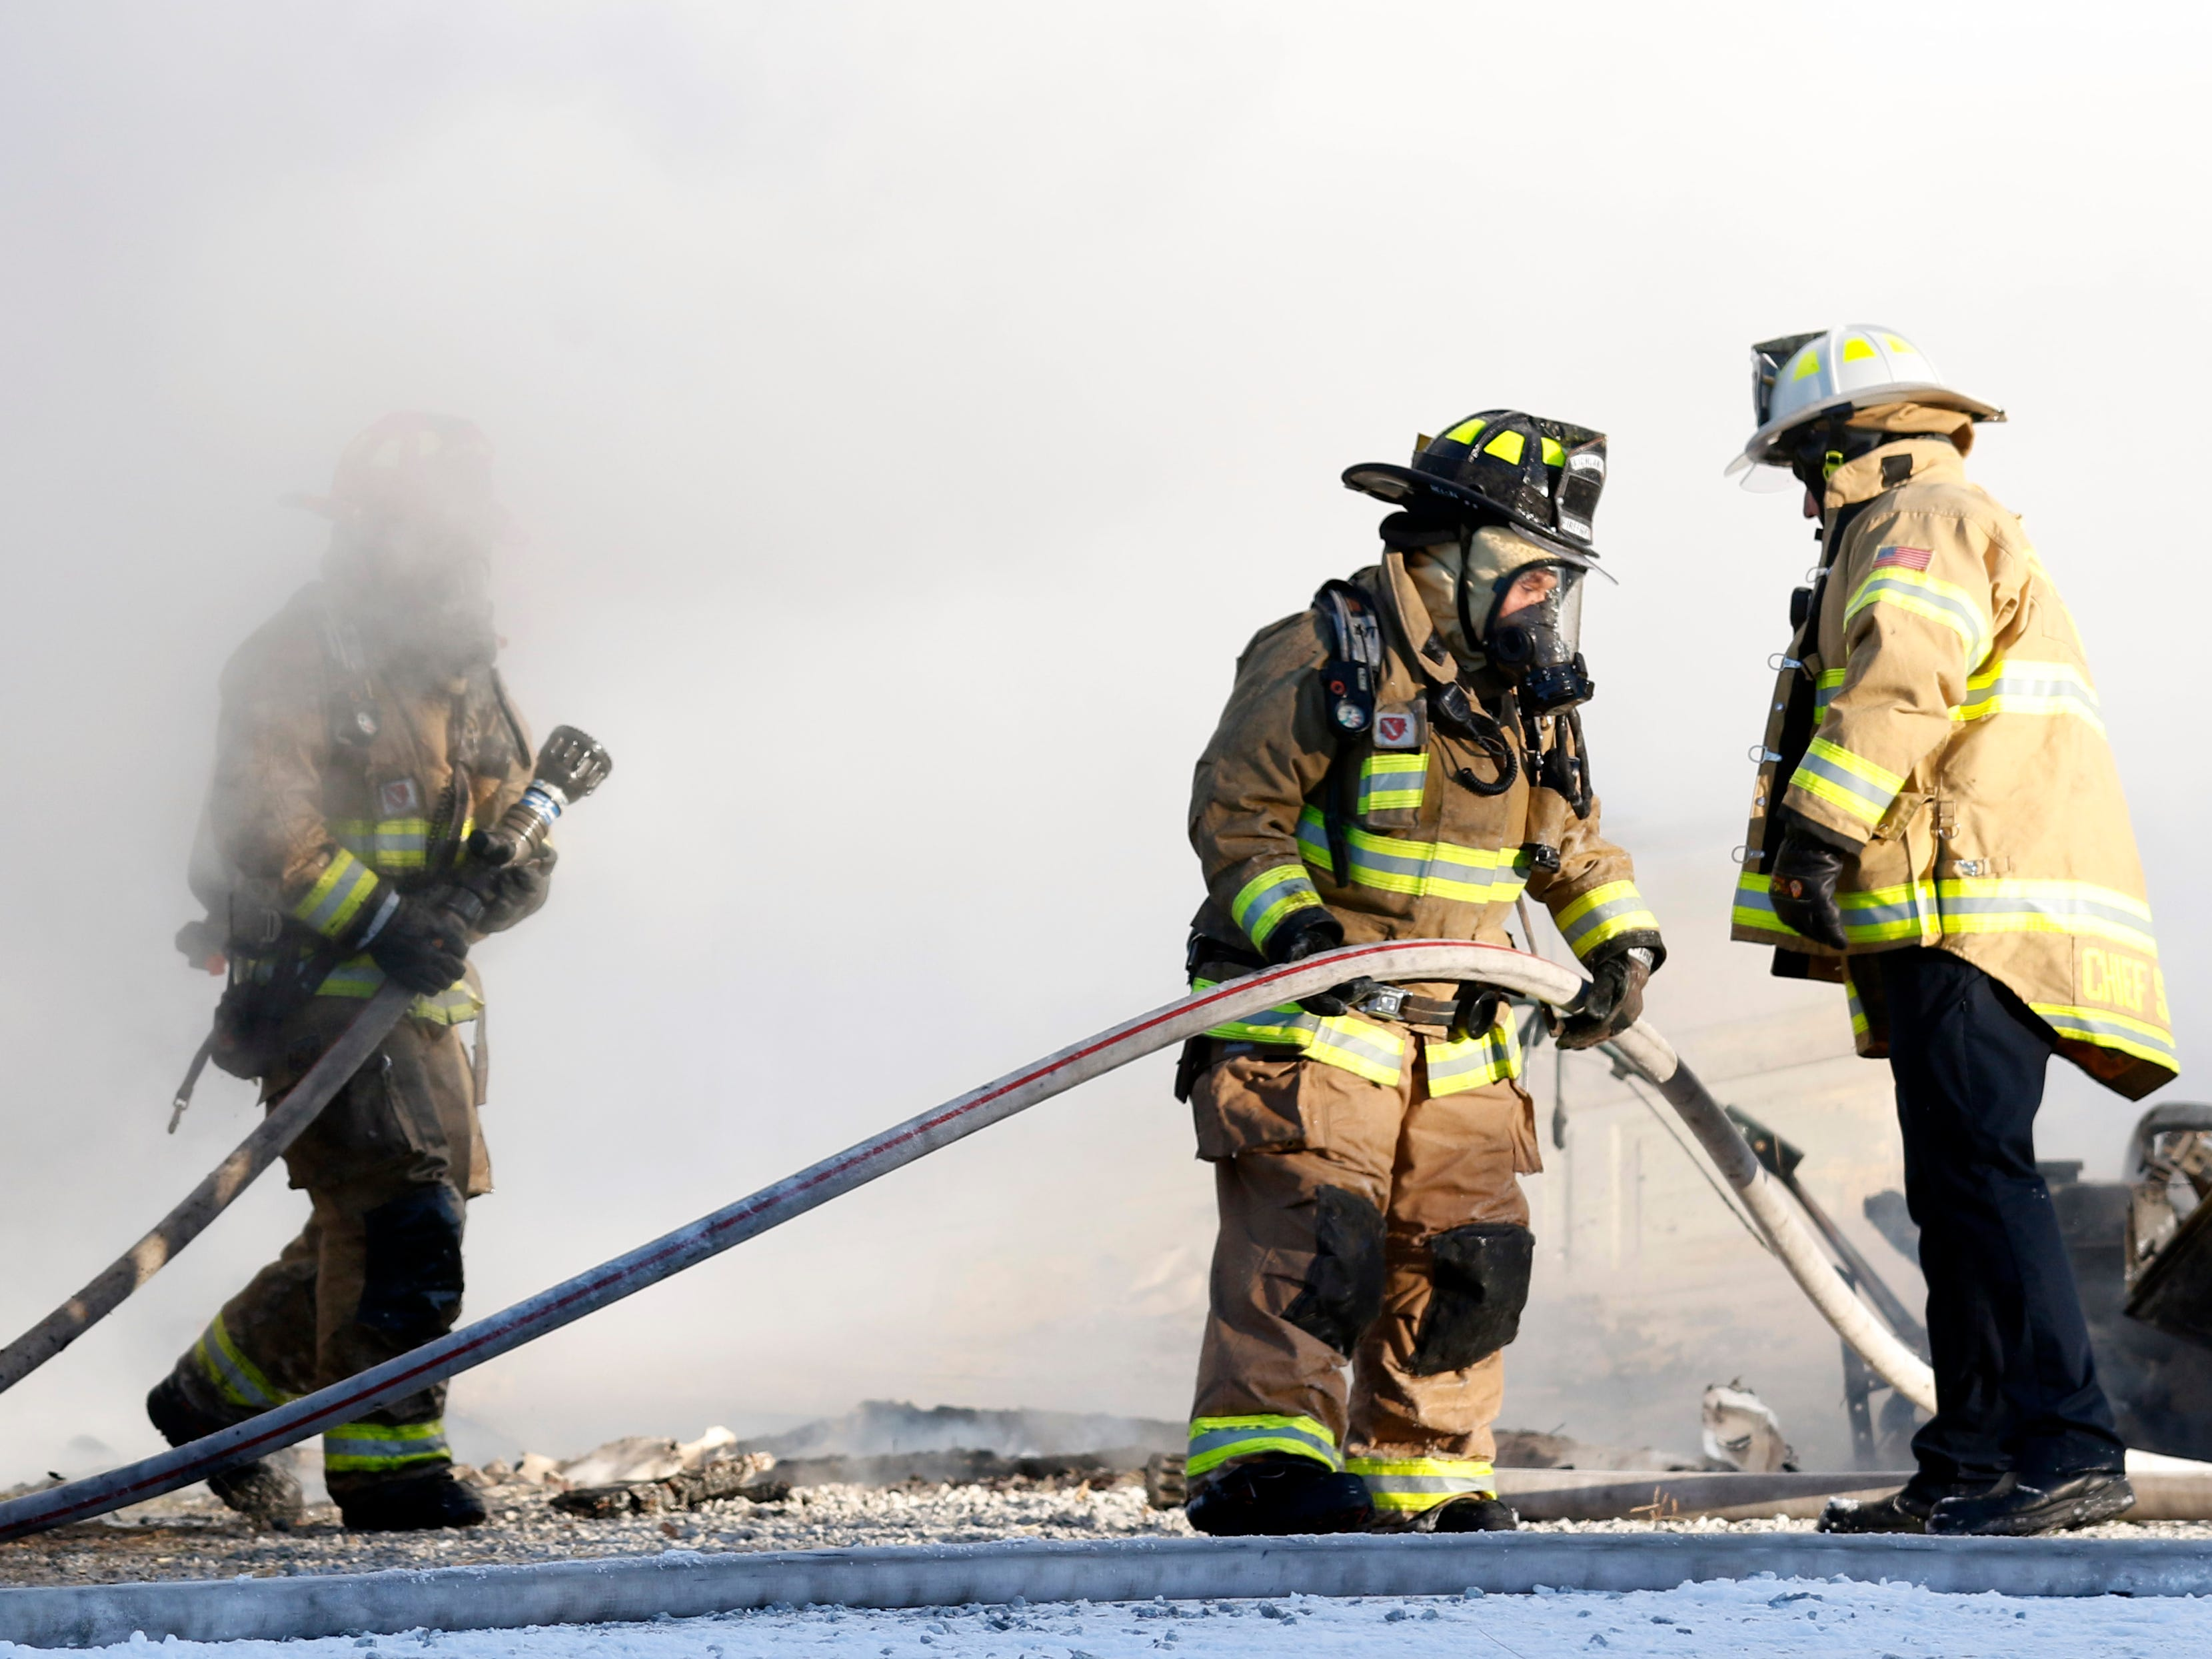 Firefighters walk through steam and smoke as they fight a fire at 9640 Old Rushville Road Wednesday, Jan. 30, 2019, in Rushcreek Township. Bremen-Rushcreek Township Fire Chief William Duvall said the fire started in the home's garage, burning it to the ground, and spreading into the home itself. Duvall said the home, garage and several vehicles were total losses. No one was injured in the fire.